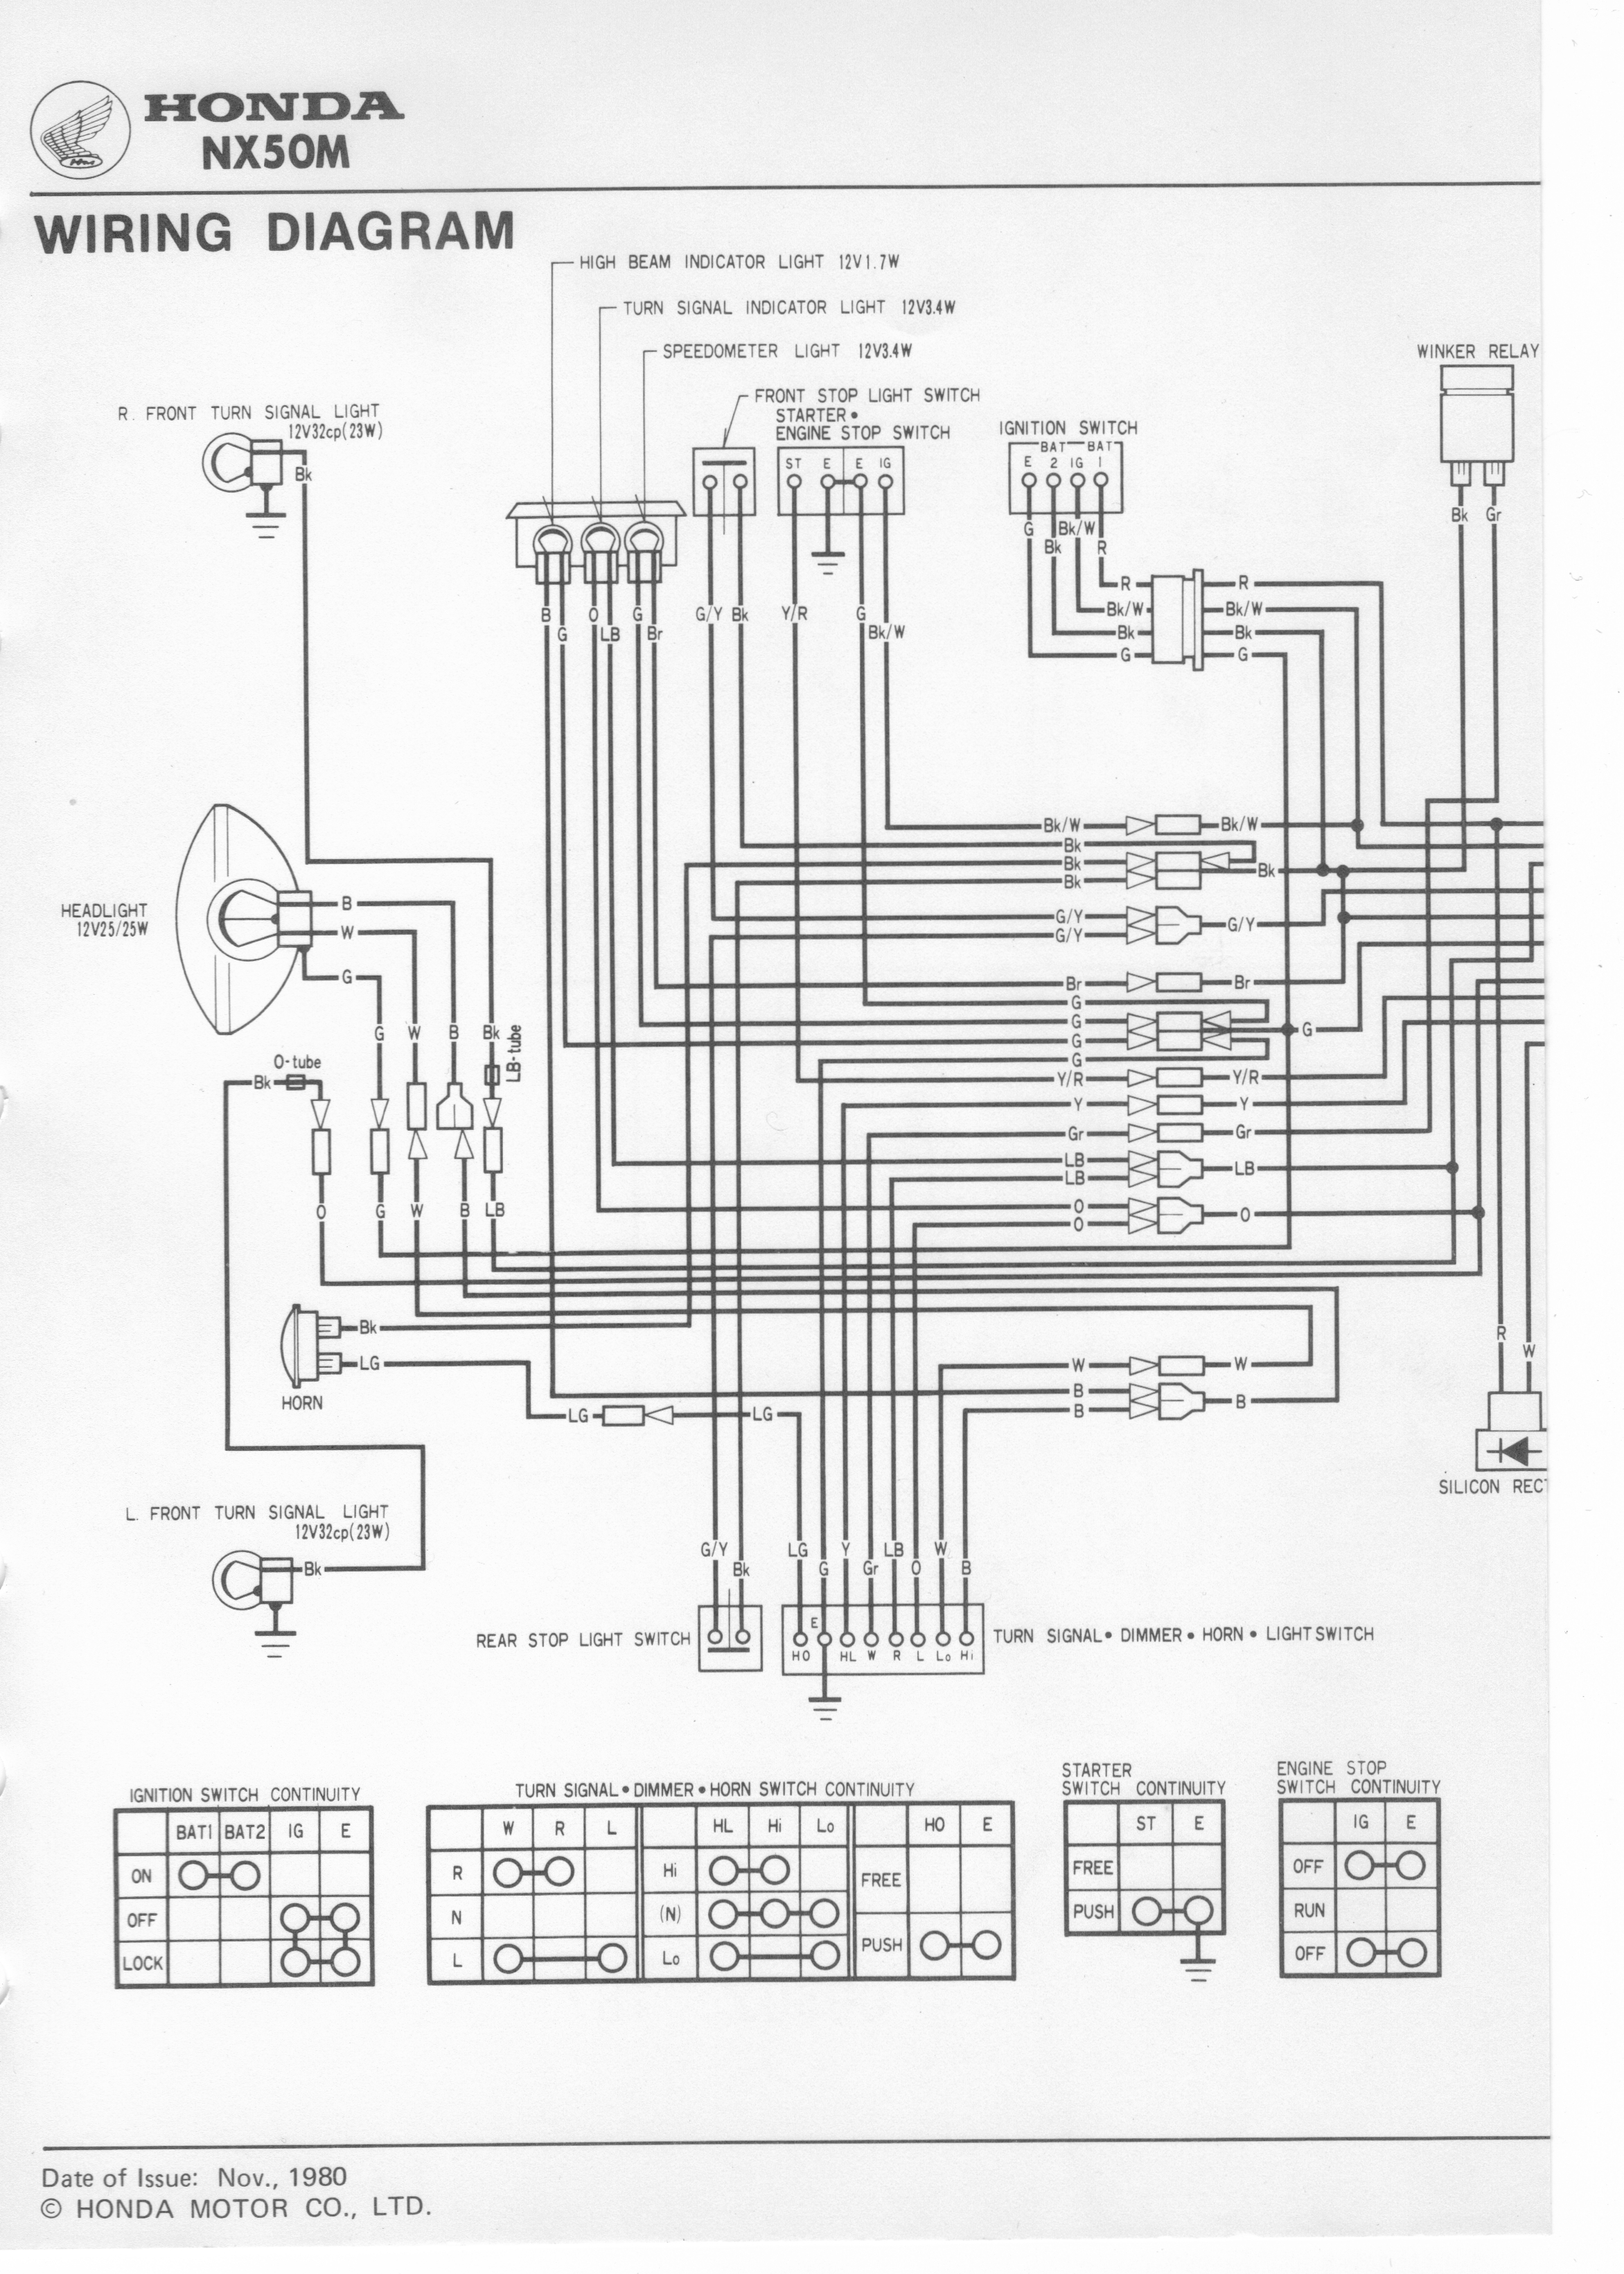 Diagram Hc He Honda Engine Wiring Diagram Full